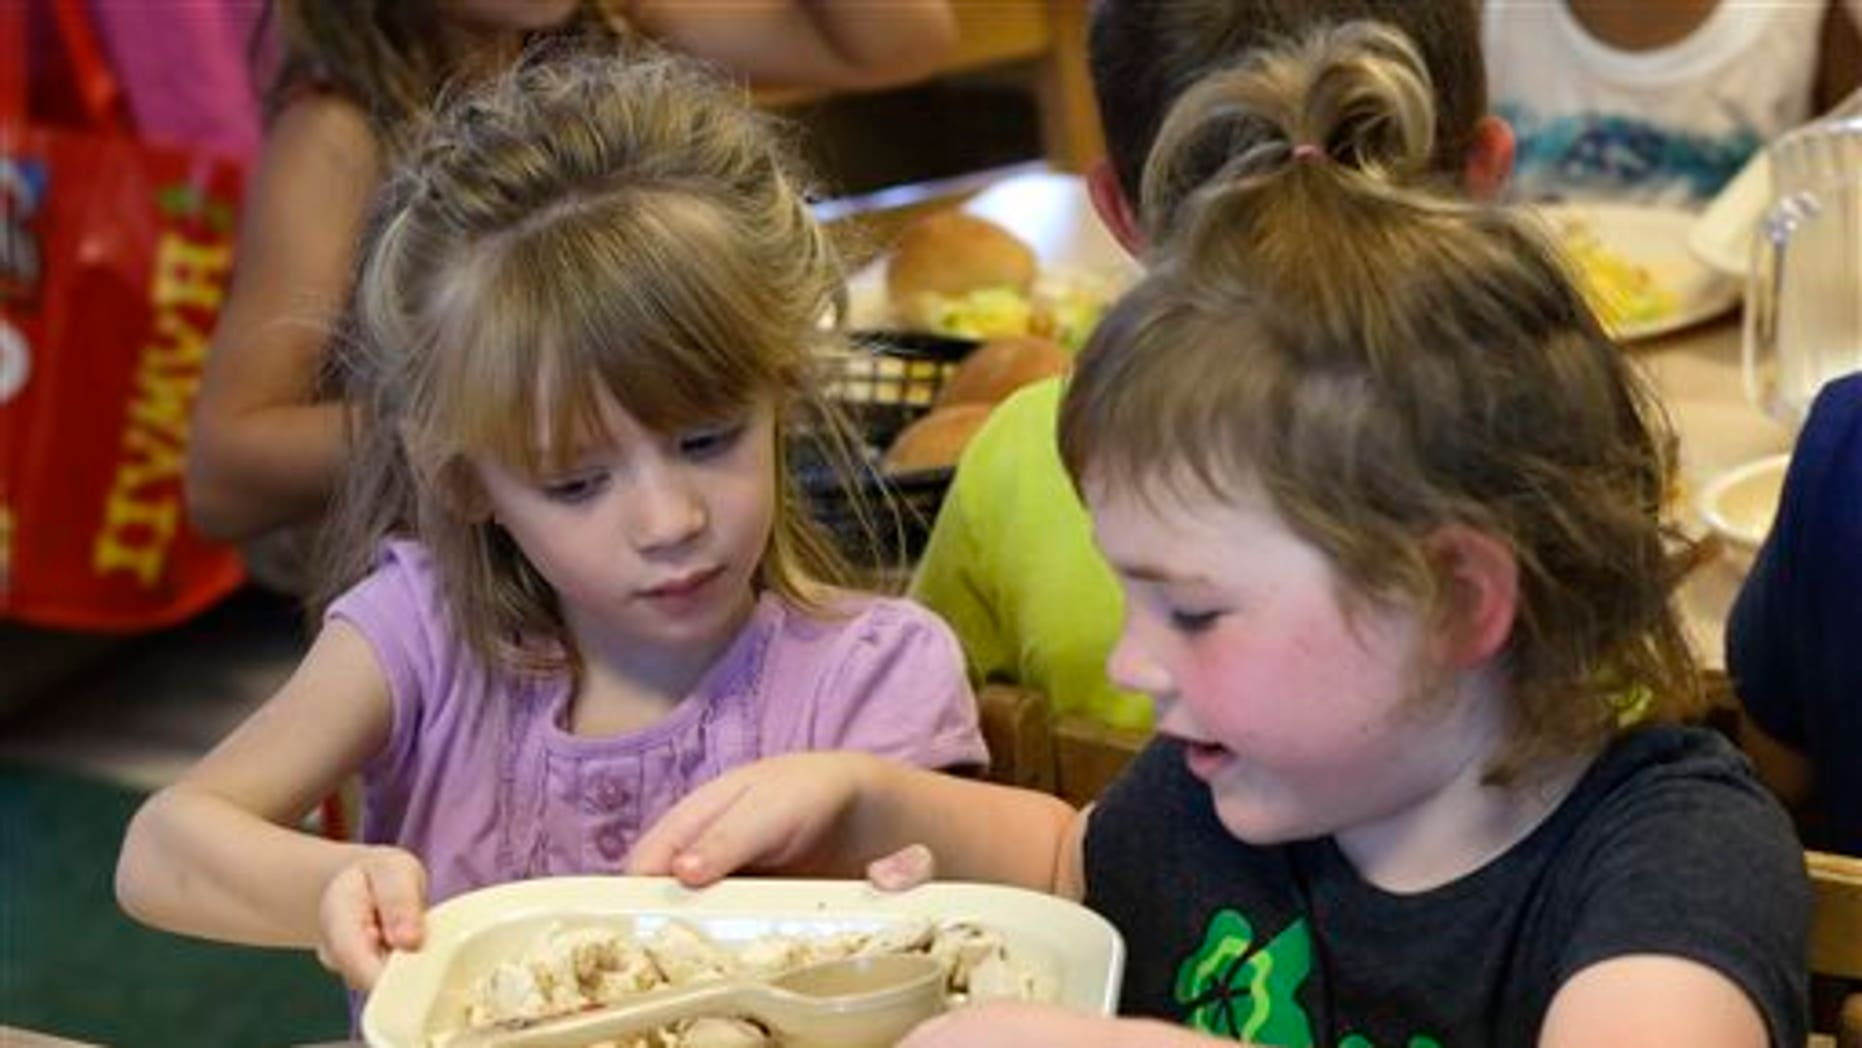 FILE -- June 24, 2015: Rebekah Webb, left, shares a family-style meal with Zoe Turner during lunch with other five-year-olds at the Olathe Family YMCA in Olathe, Kan. (AP Photo/Orlin Wagner)